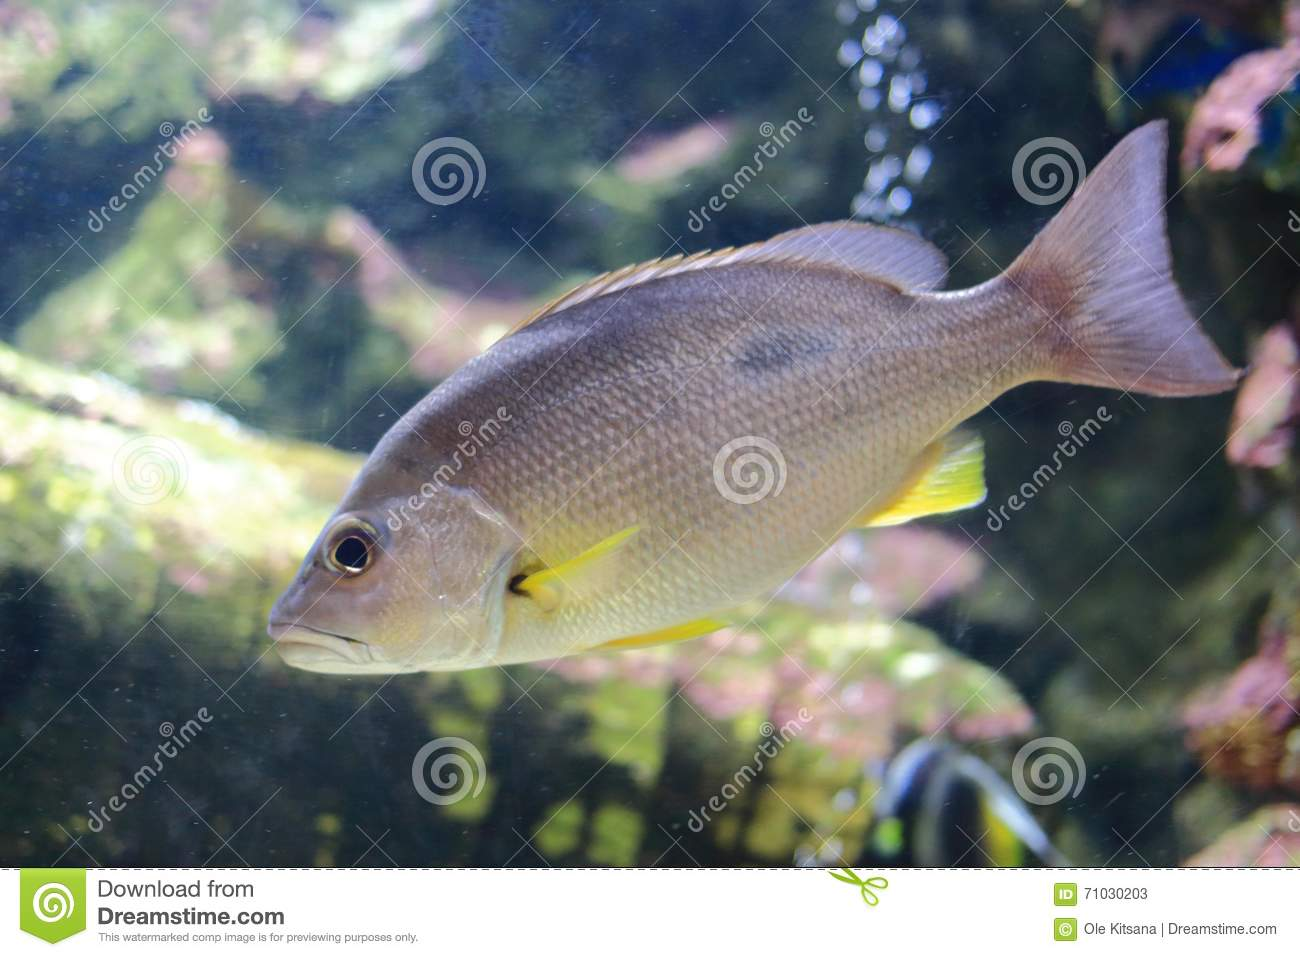 Russell's Snapper Or Moses Perch Stock Image - Image of fish, ocean